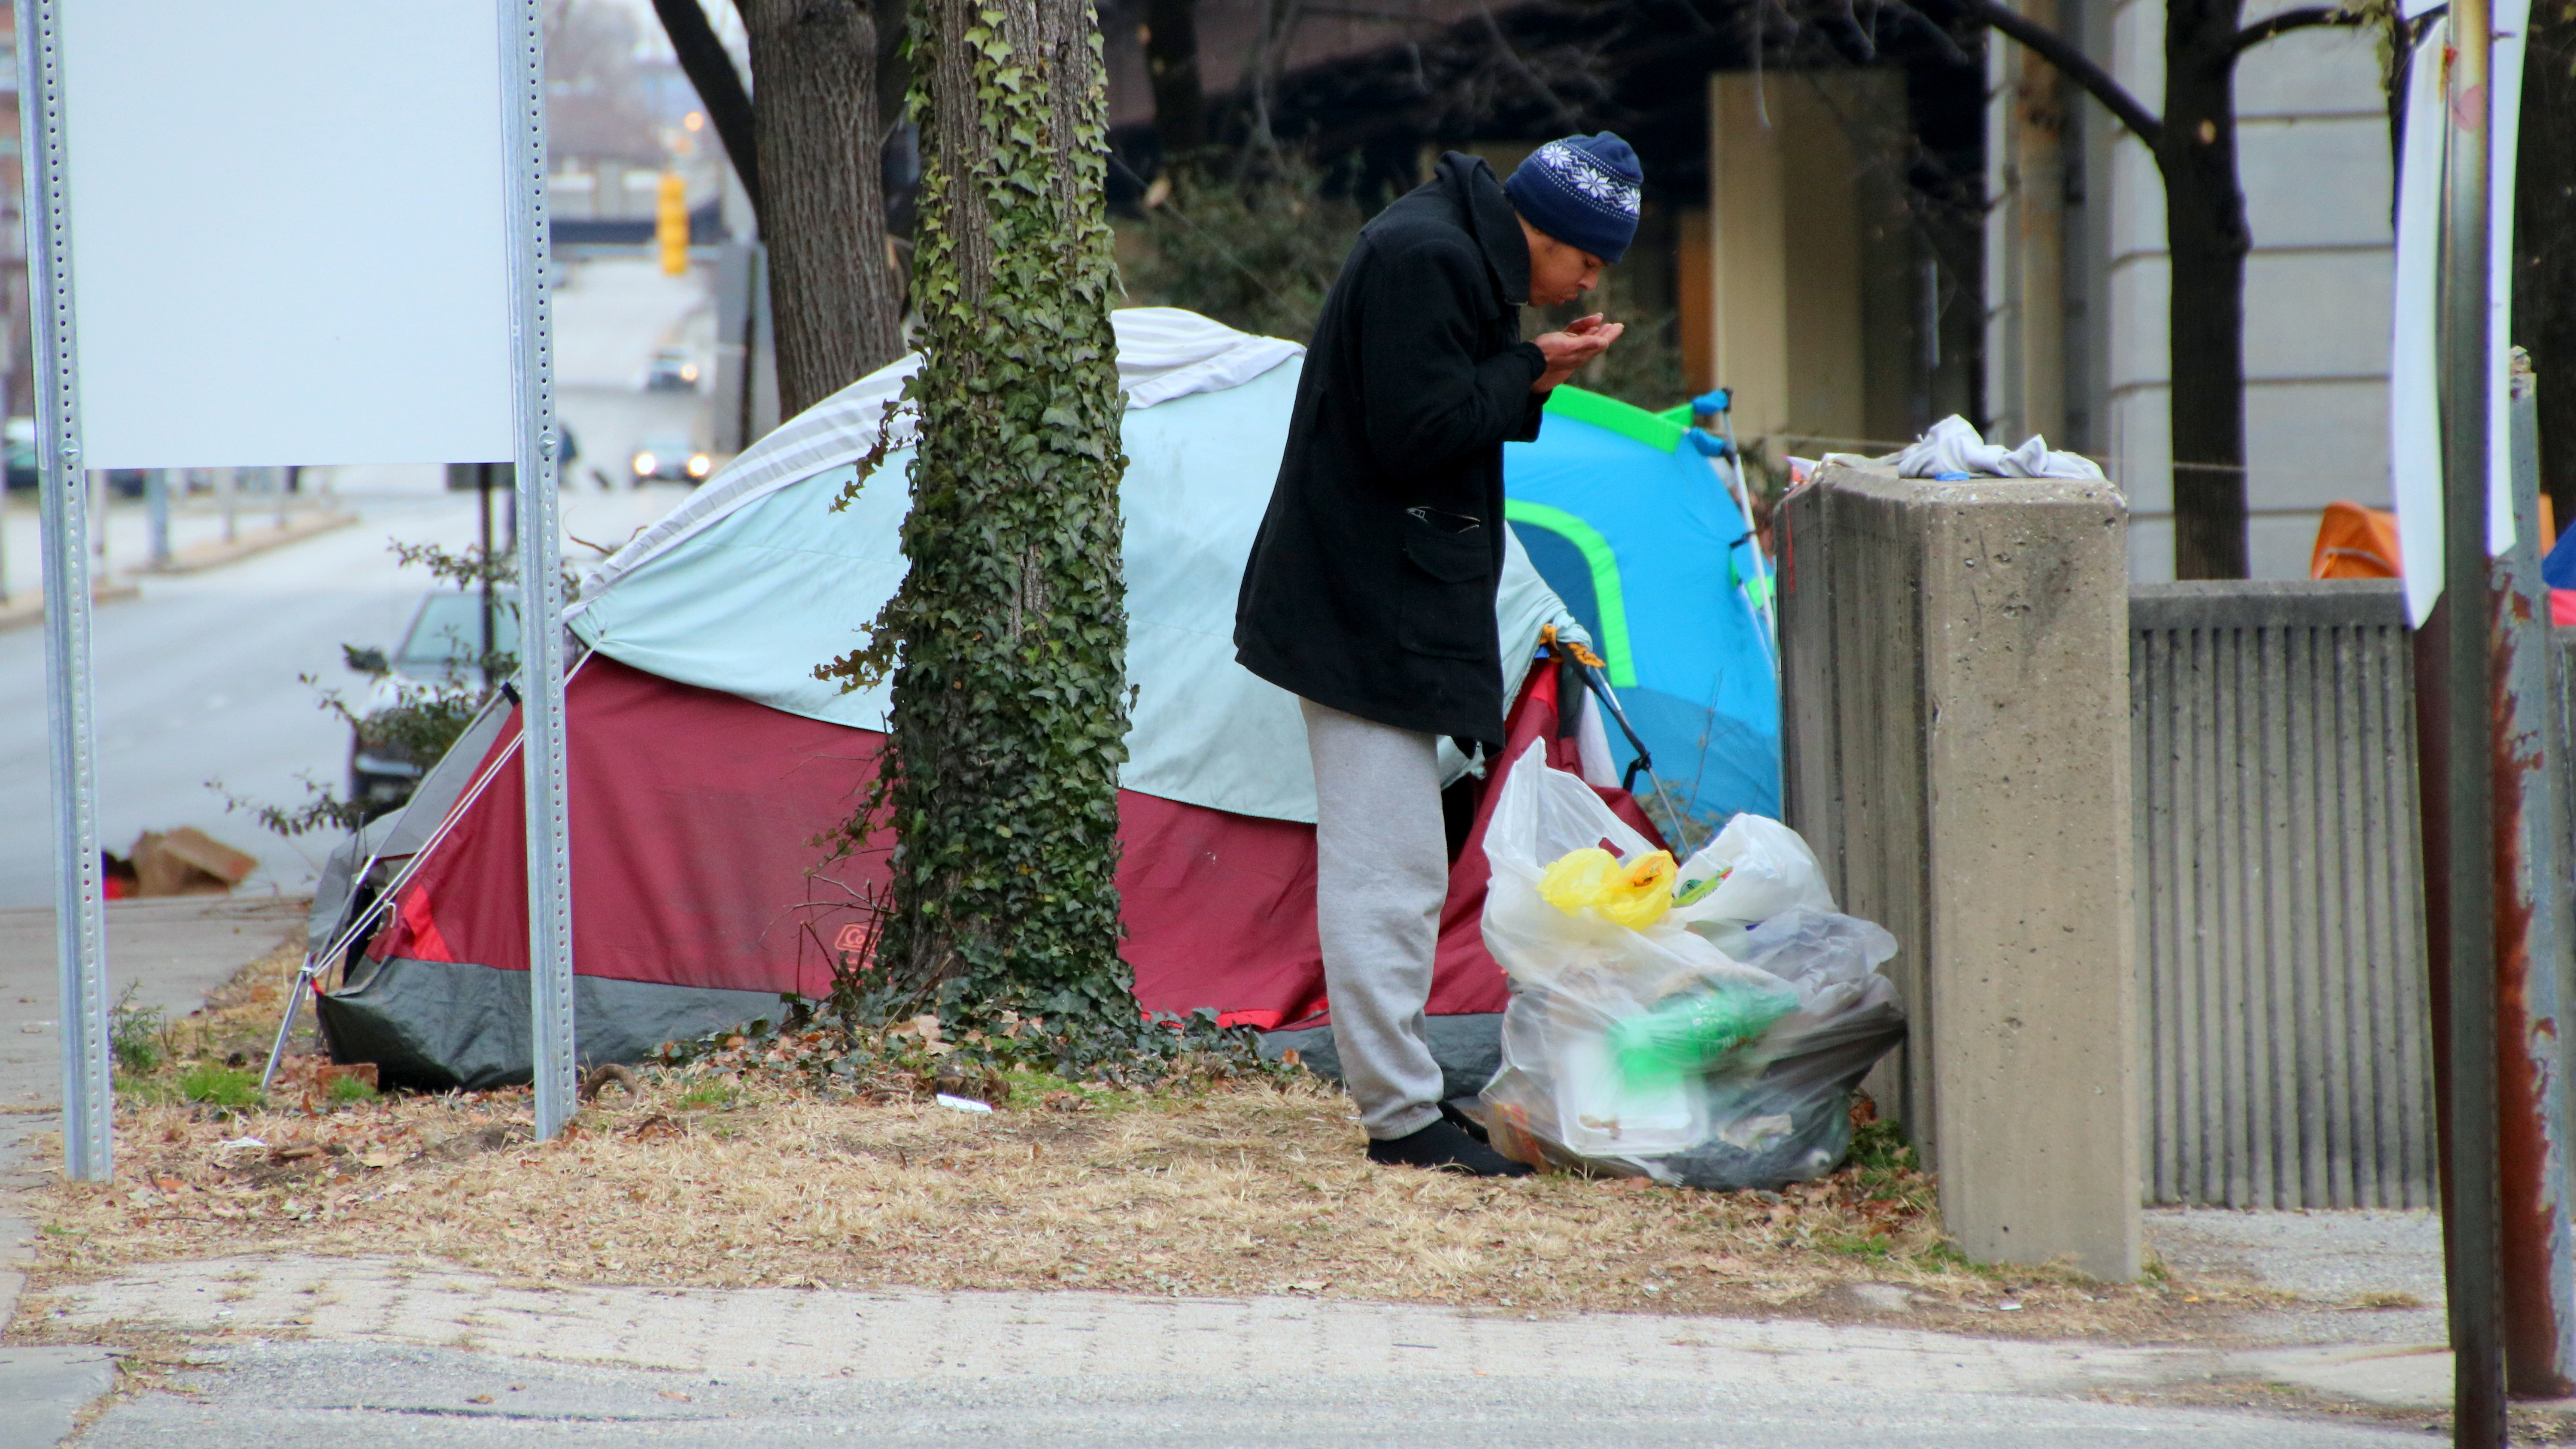 Namid Rawls outside the tent where he has been living for the past month along with about 30 other people, along Guilford Avenue. (Fern Shen)